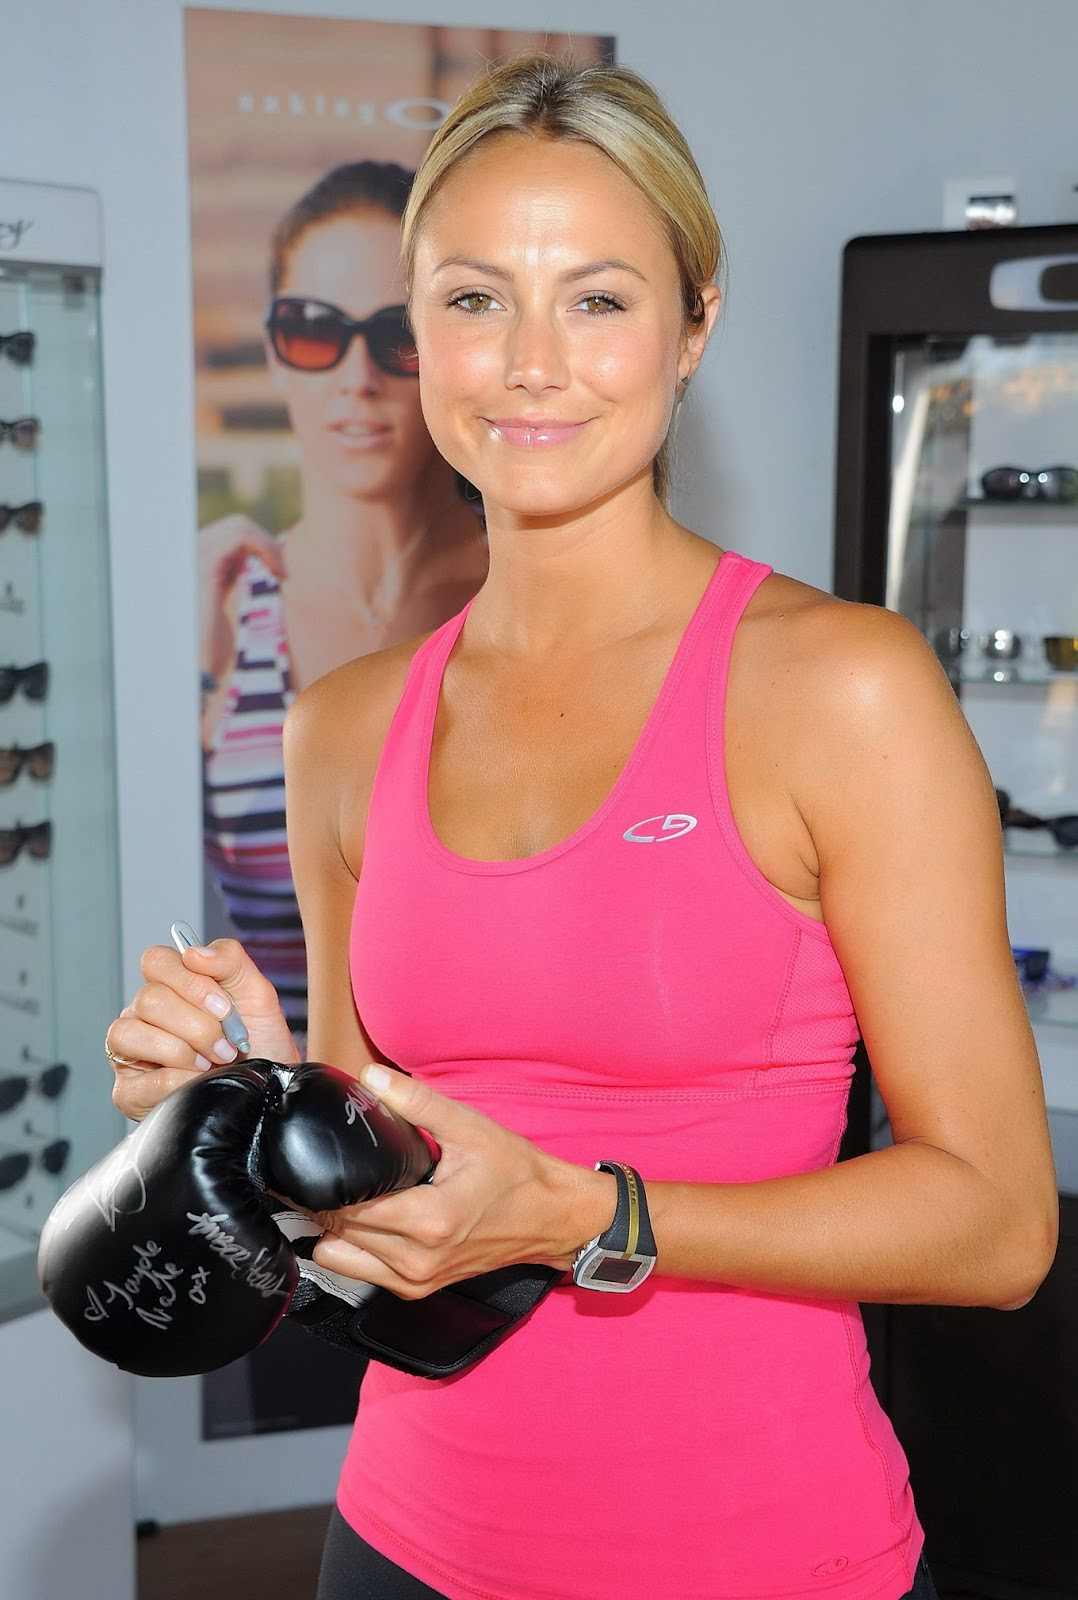 Stacy Keibler in pink top workin' out at LA fitness show ~ The Stars Gossips